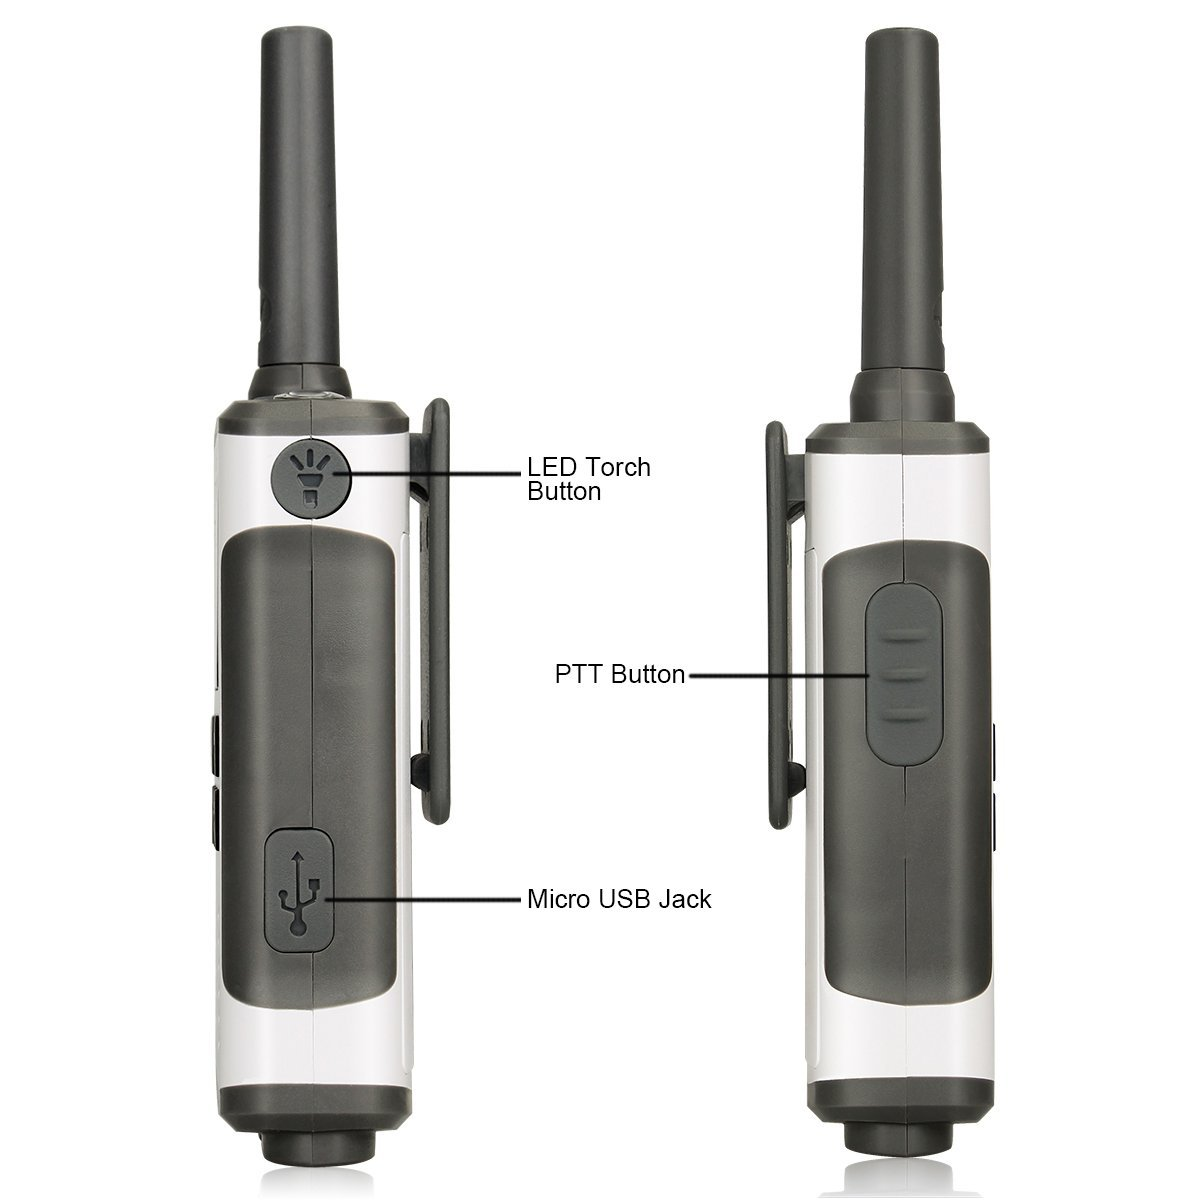 Retevis RT45 Walkie Talkies AA Regular and Rechargeable Battery Power 2 Way Radio Call Reminder Roger Beep Sub-Channel Monitor Hands Free Two Way Radio with Flashlight 10 Pack USA1044A@10-J0067A@10-J0012A